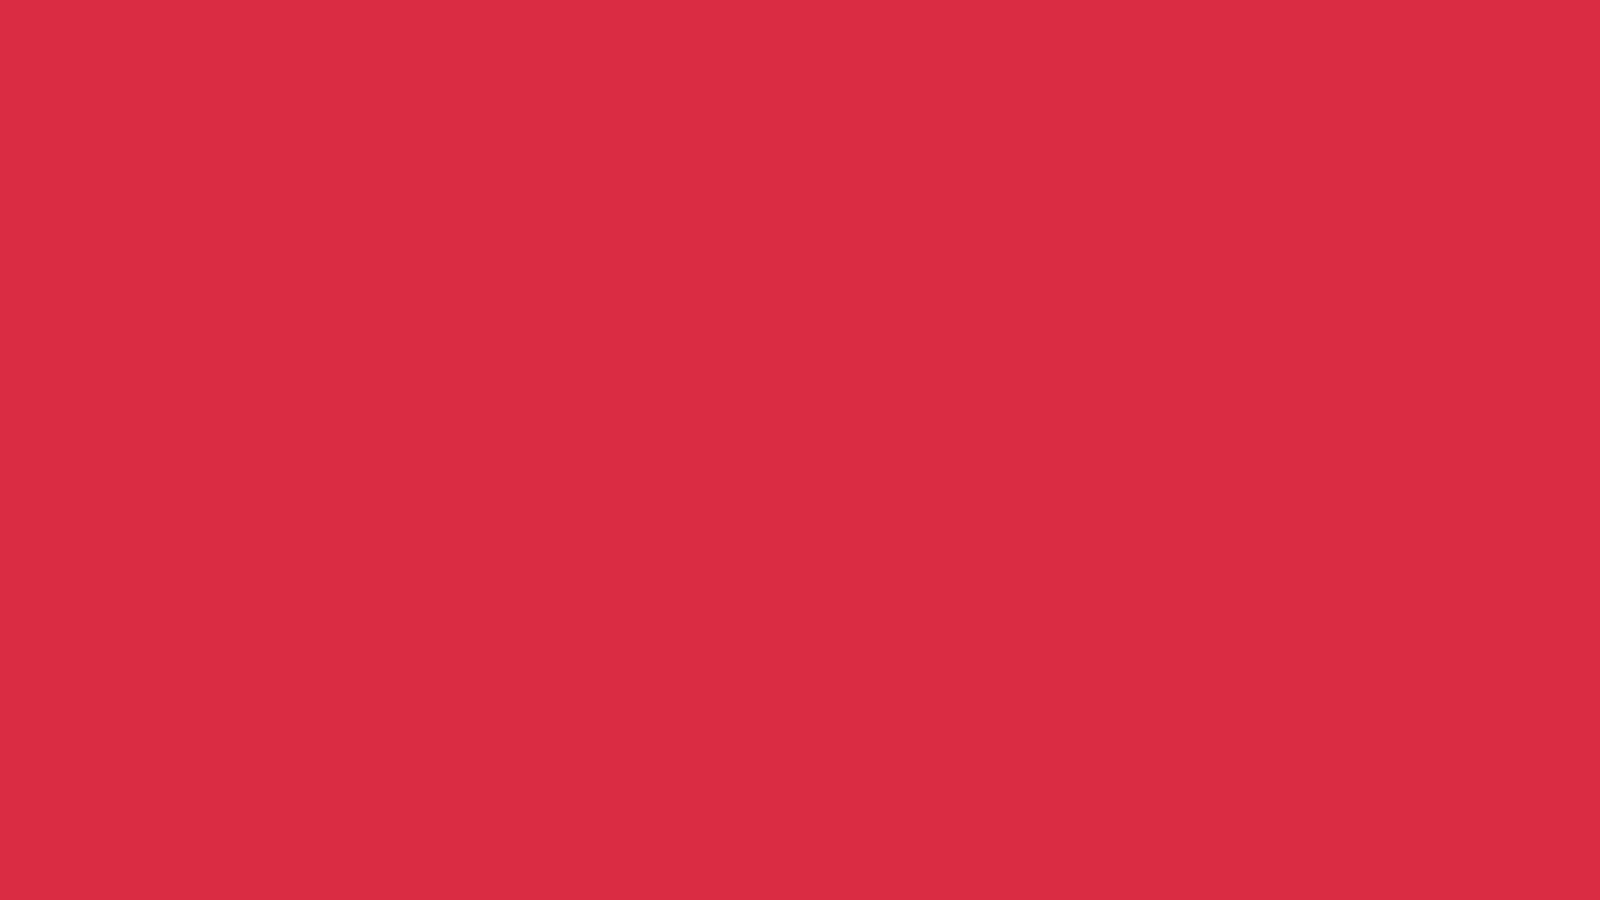 1600x900 Rusty Red Solid Color Background